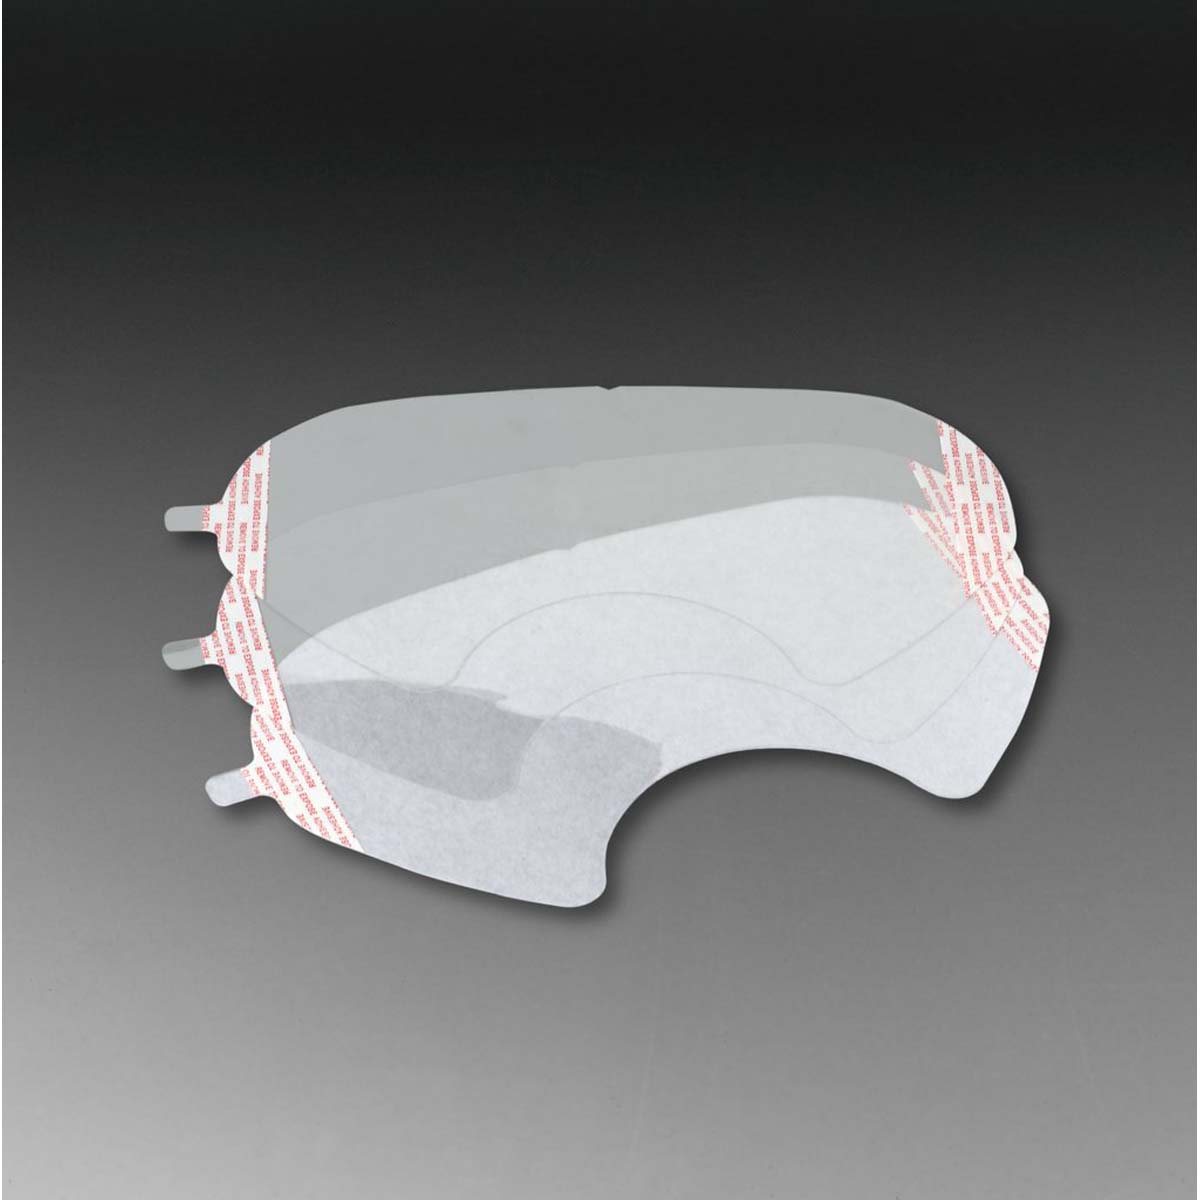 "3Mâ""¢ Faceshield Cover 6885/07142(AAD), Accessory"